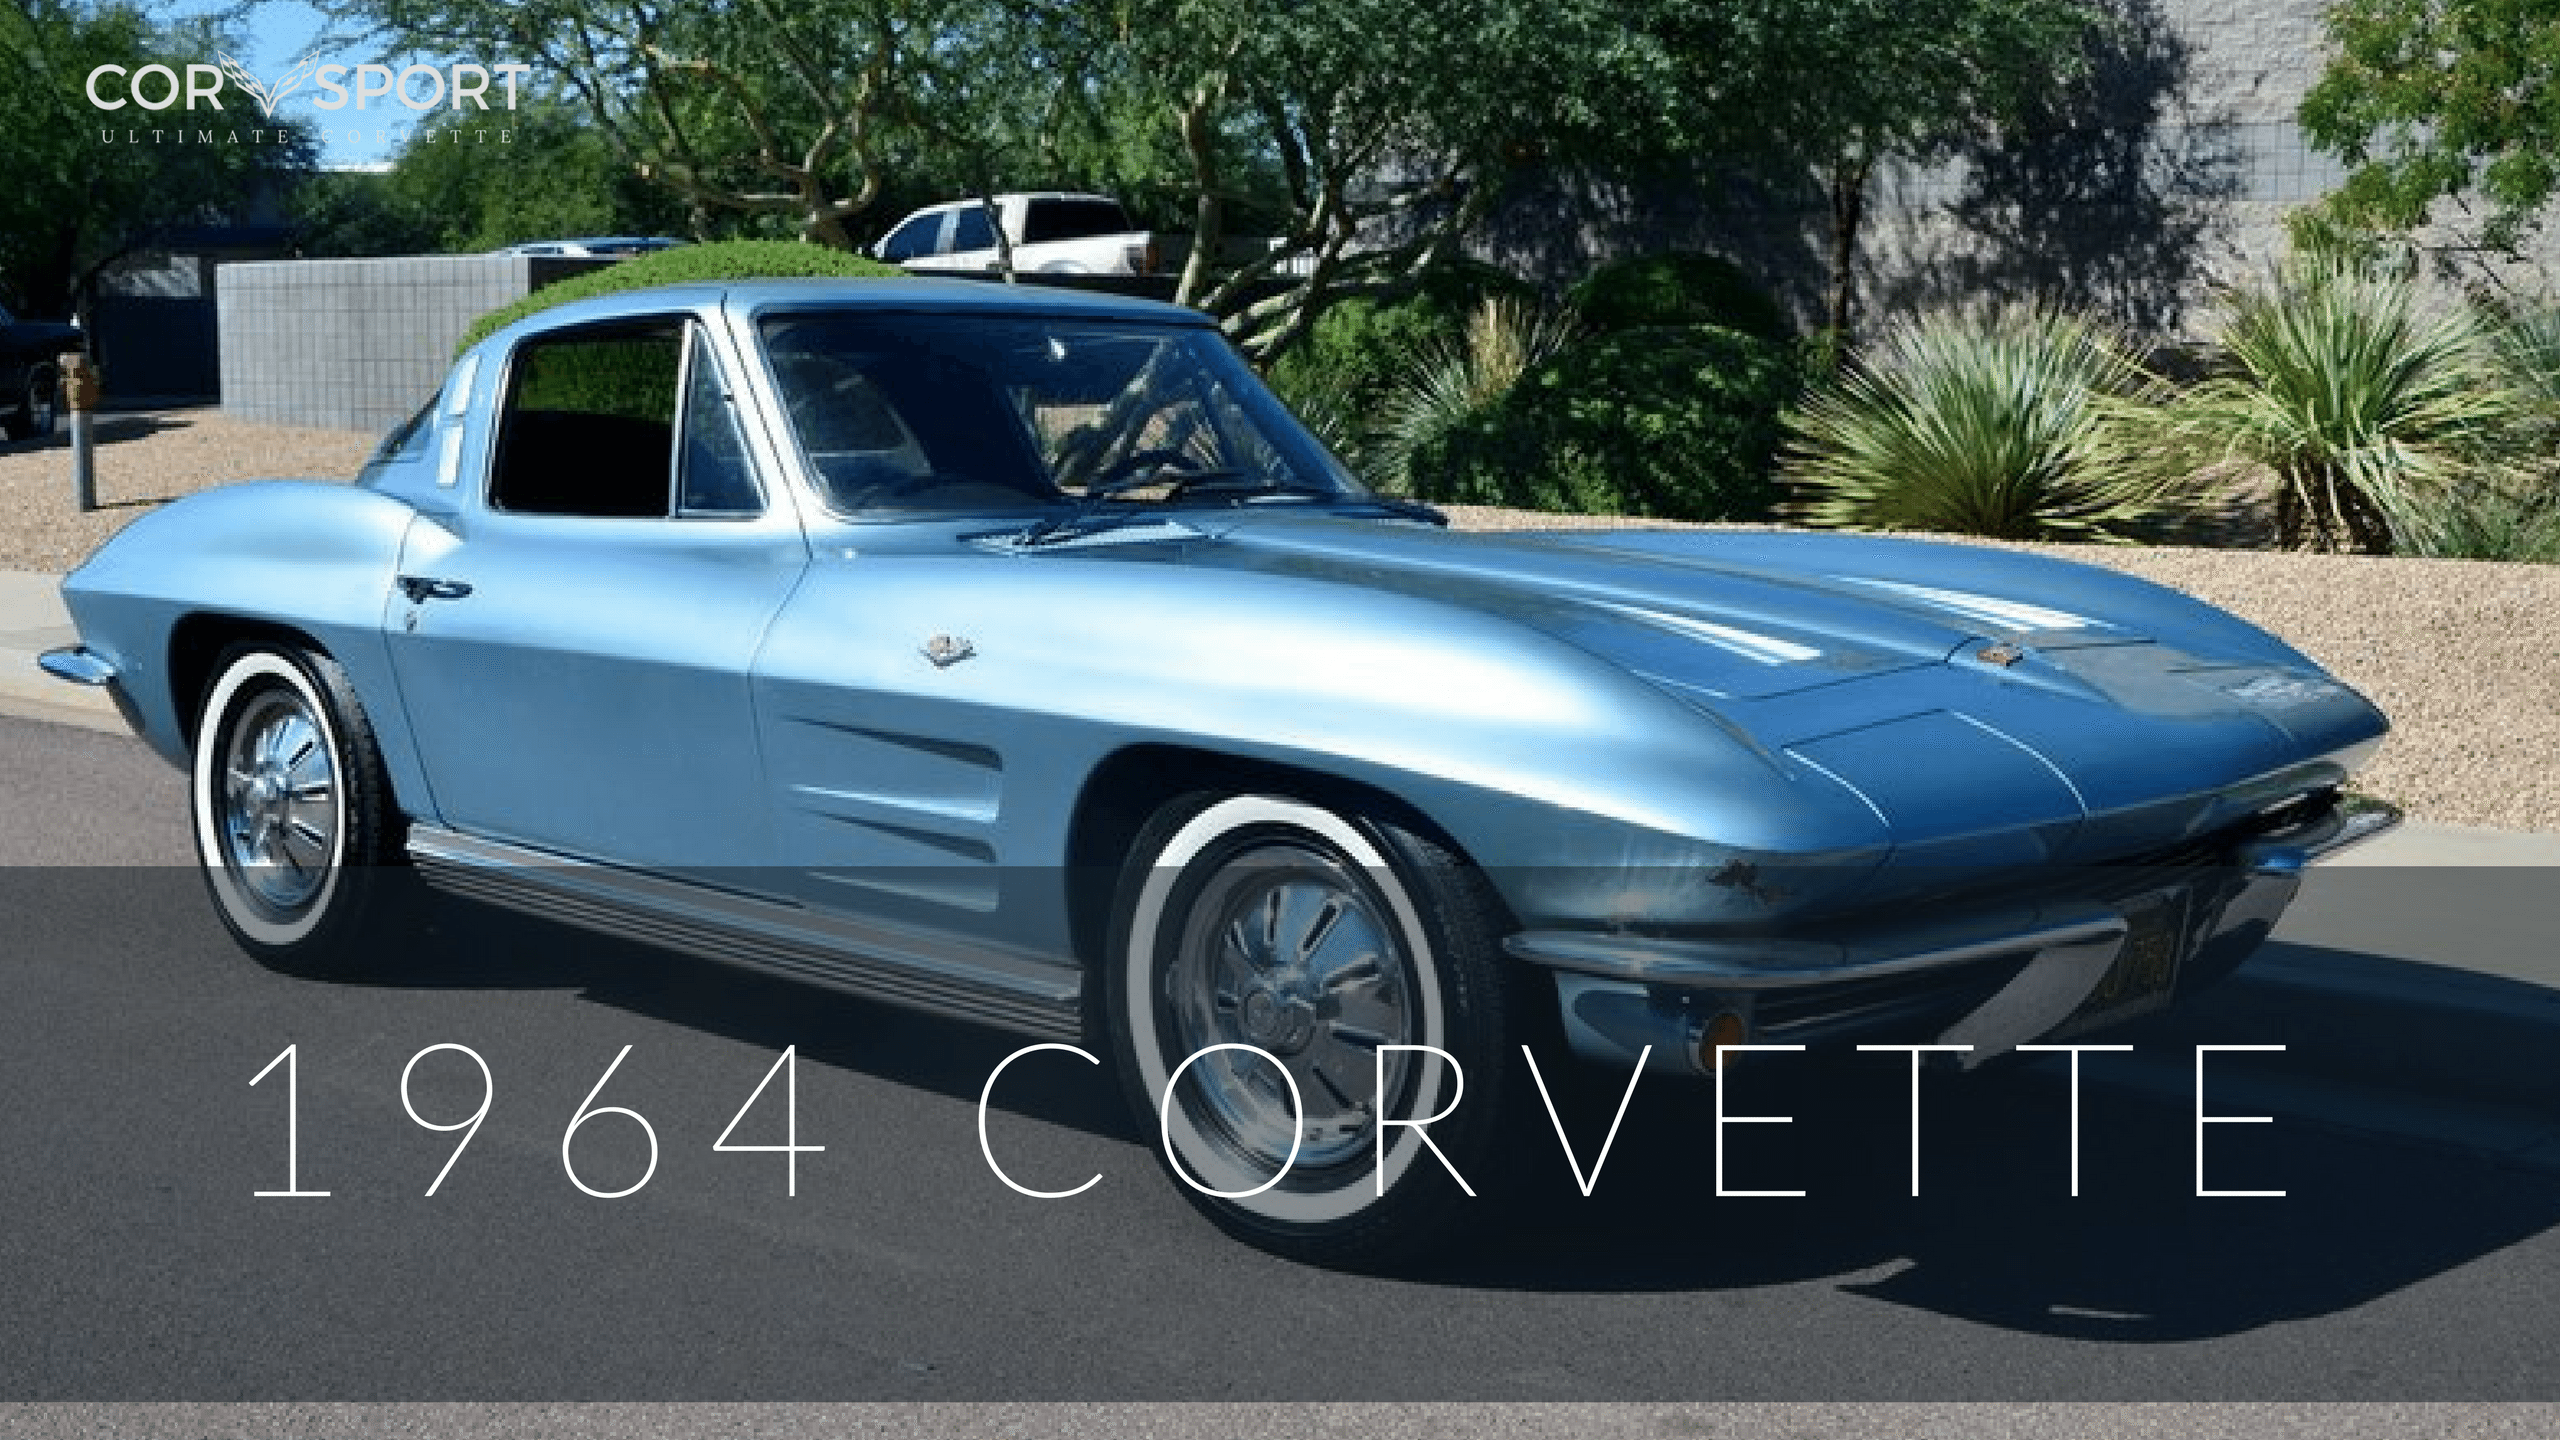 Chevrolet corvette c2 sting ray reviews prices ratings with - 1964 Corvette